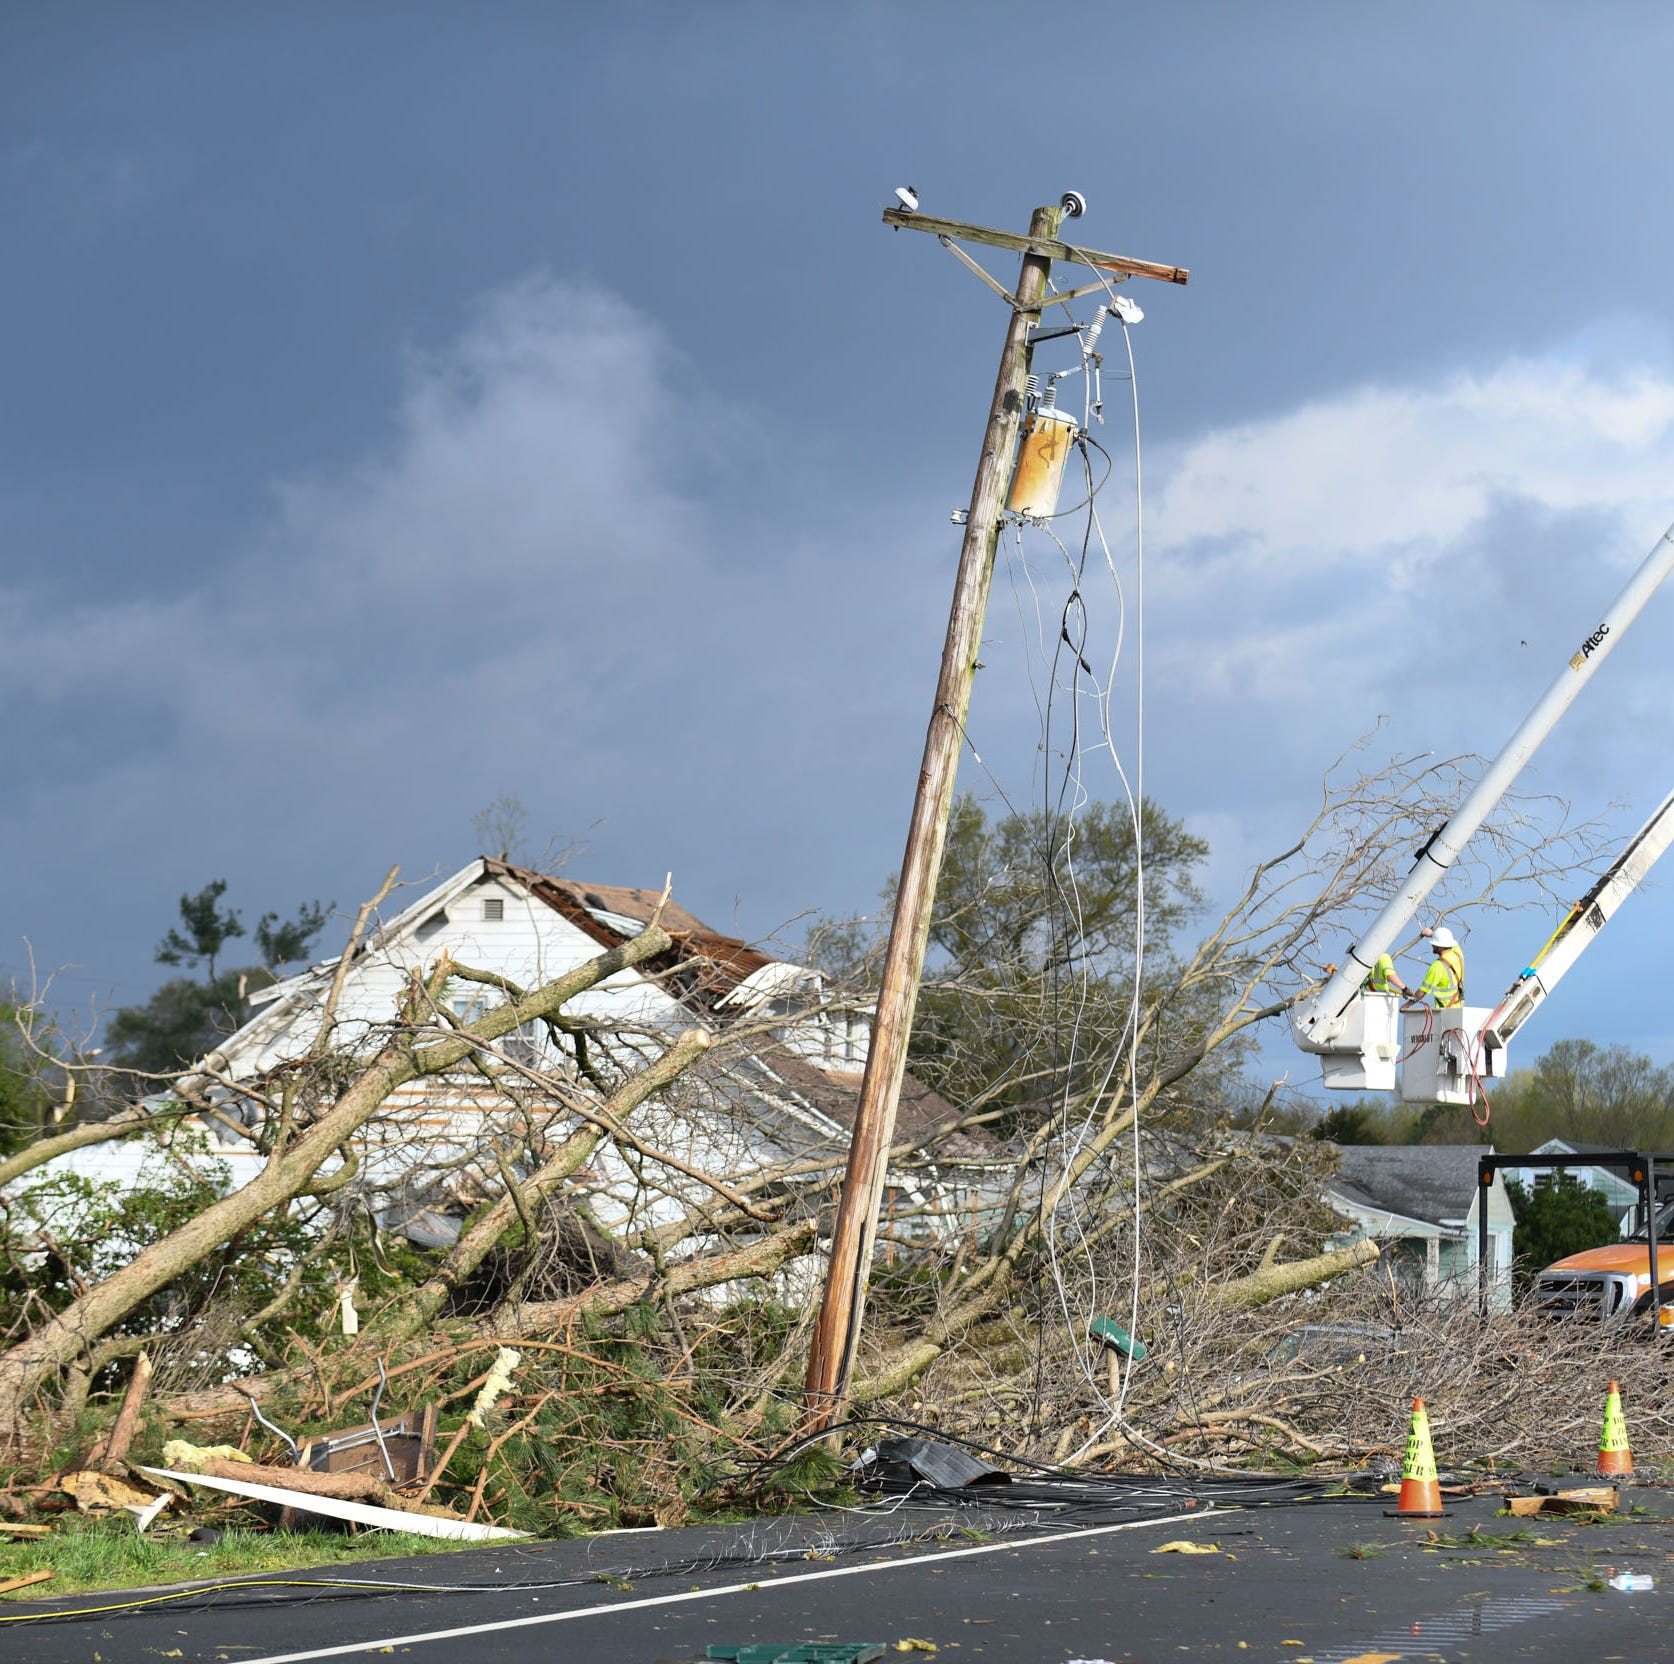 Laurel tornado upgraded to F2 after further review of damage, National Weather Service says